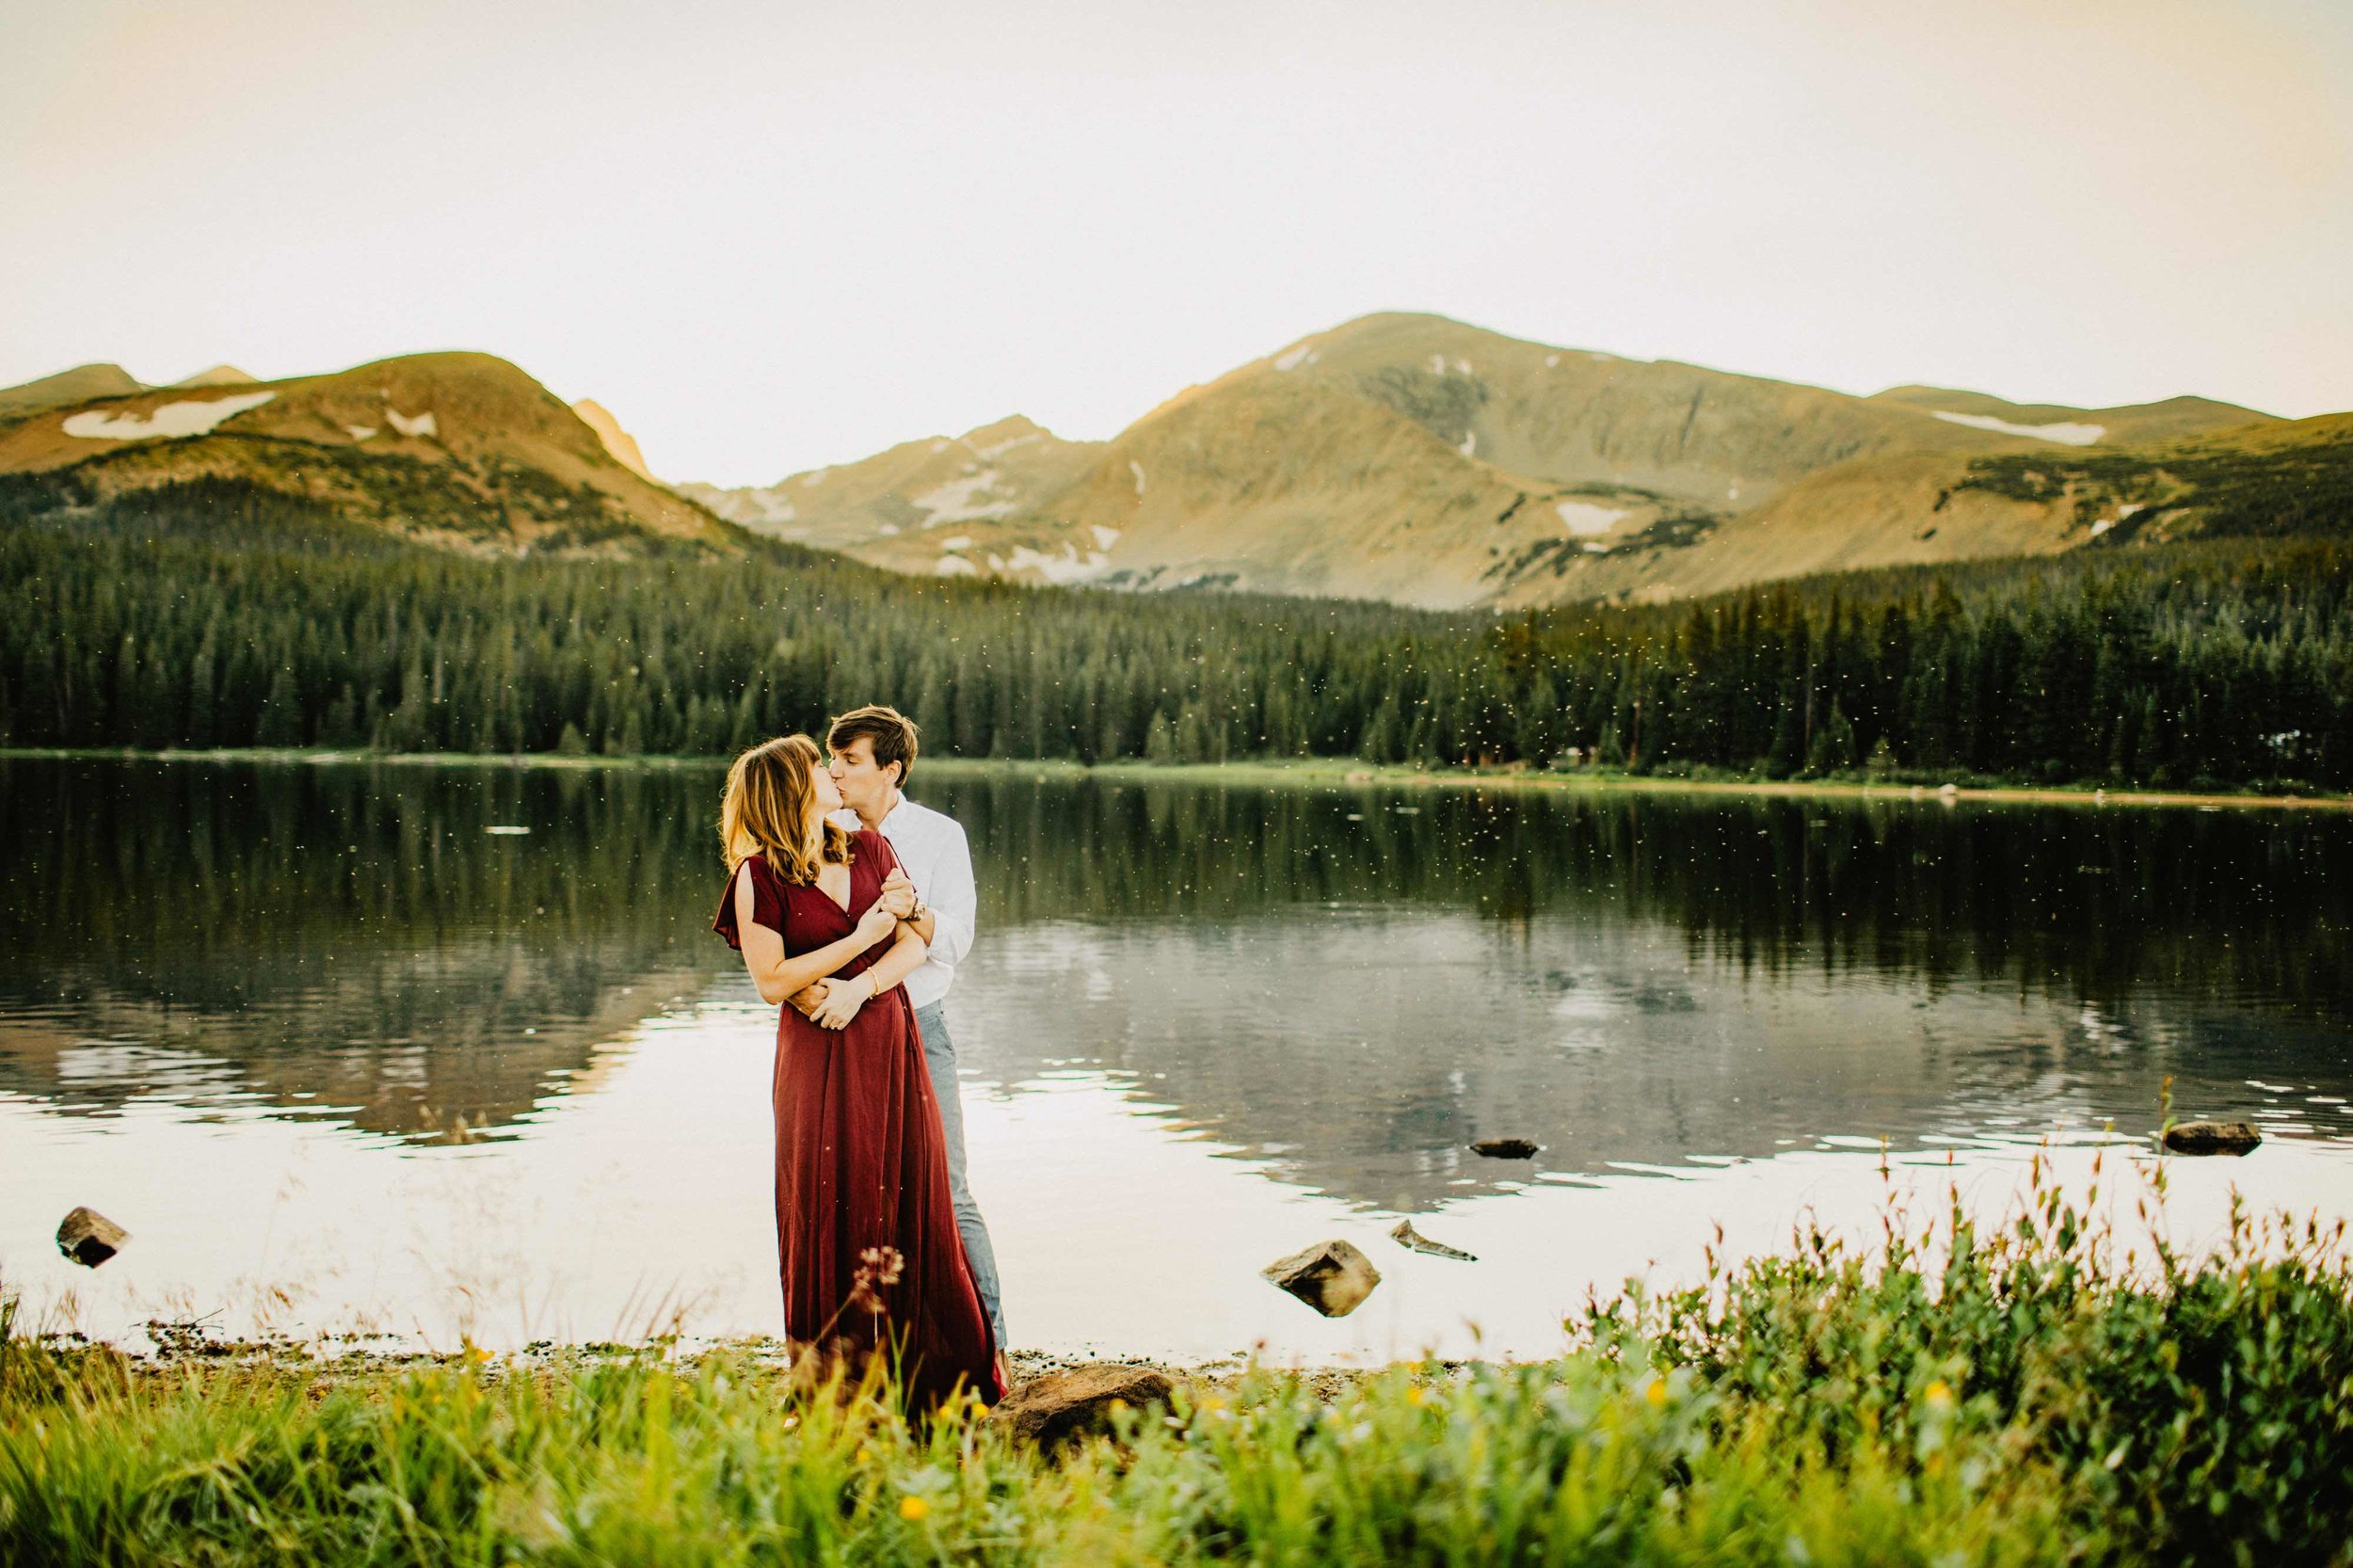 Kisa Conrad Favorites-0019-colorado-wedding-photographer-denver-springs-vail.jpeg